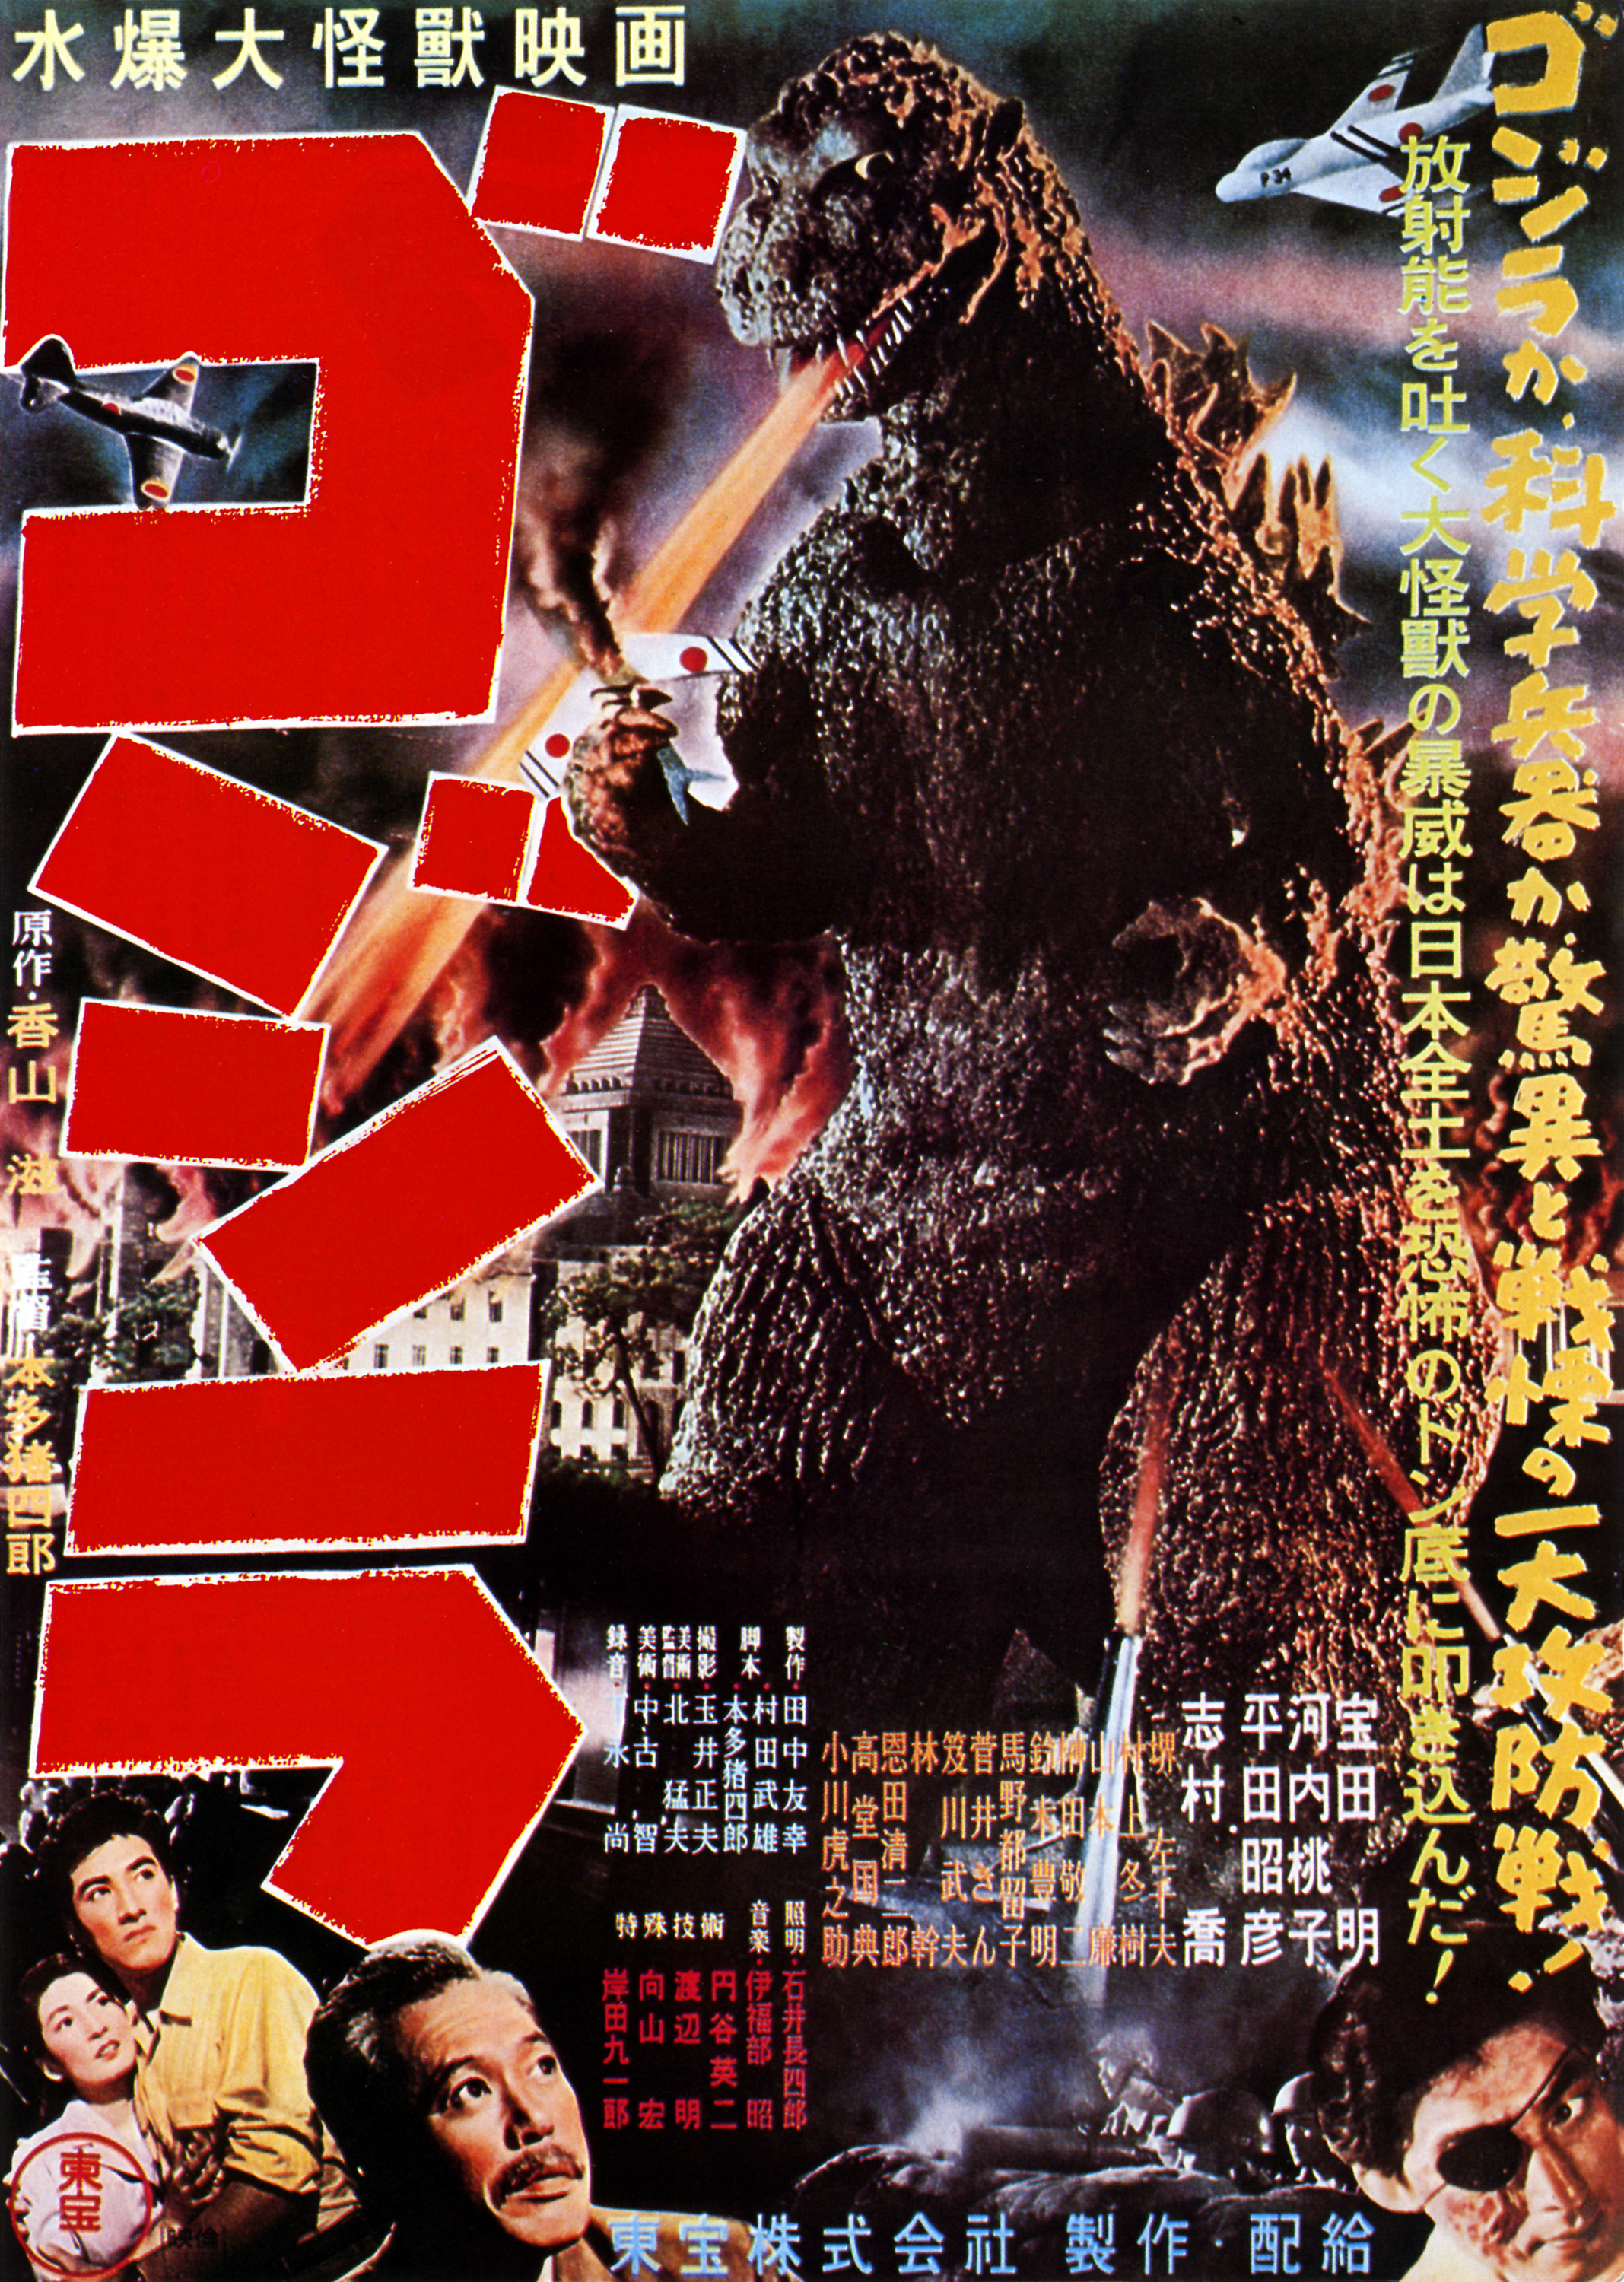 A JApanese poster for the 1954 Godzilla film,